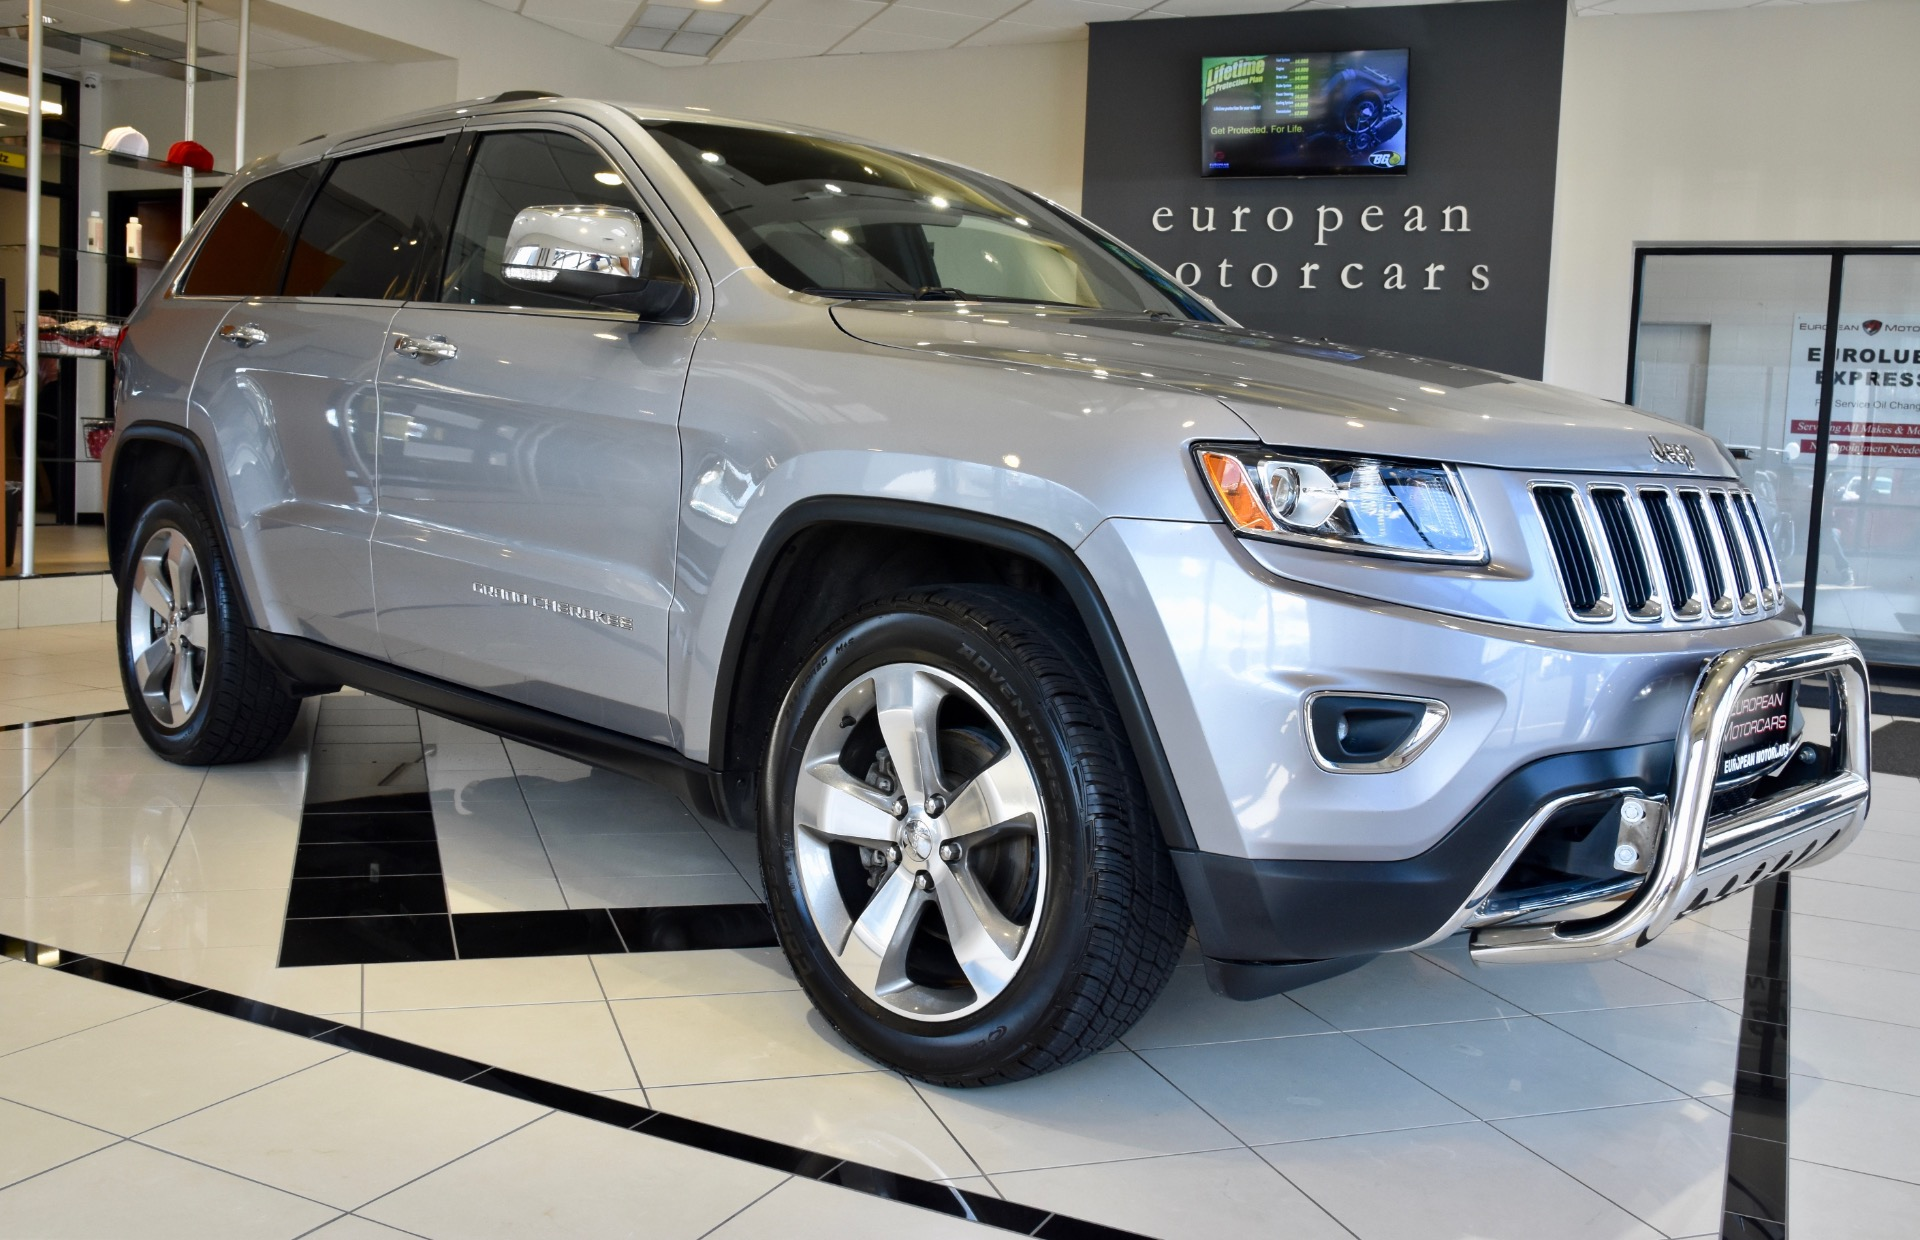 2014 jeep grand cherokee limited for sale near middletown ct ct jeep dealer stock 238066. Black Bedroom Furniture Sets. Home Design Ideas